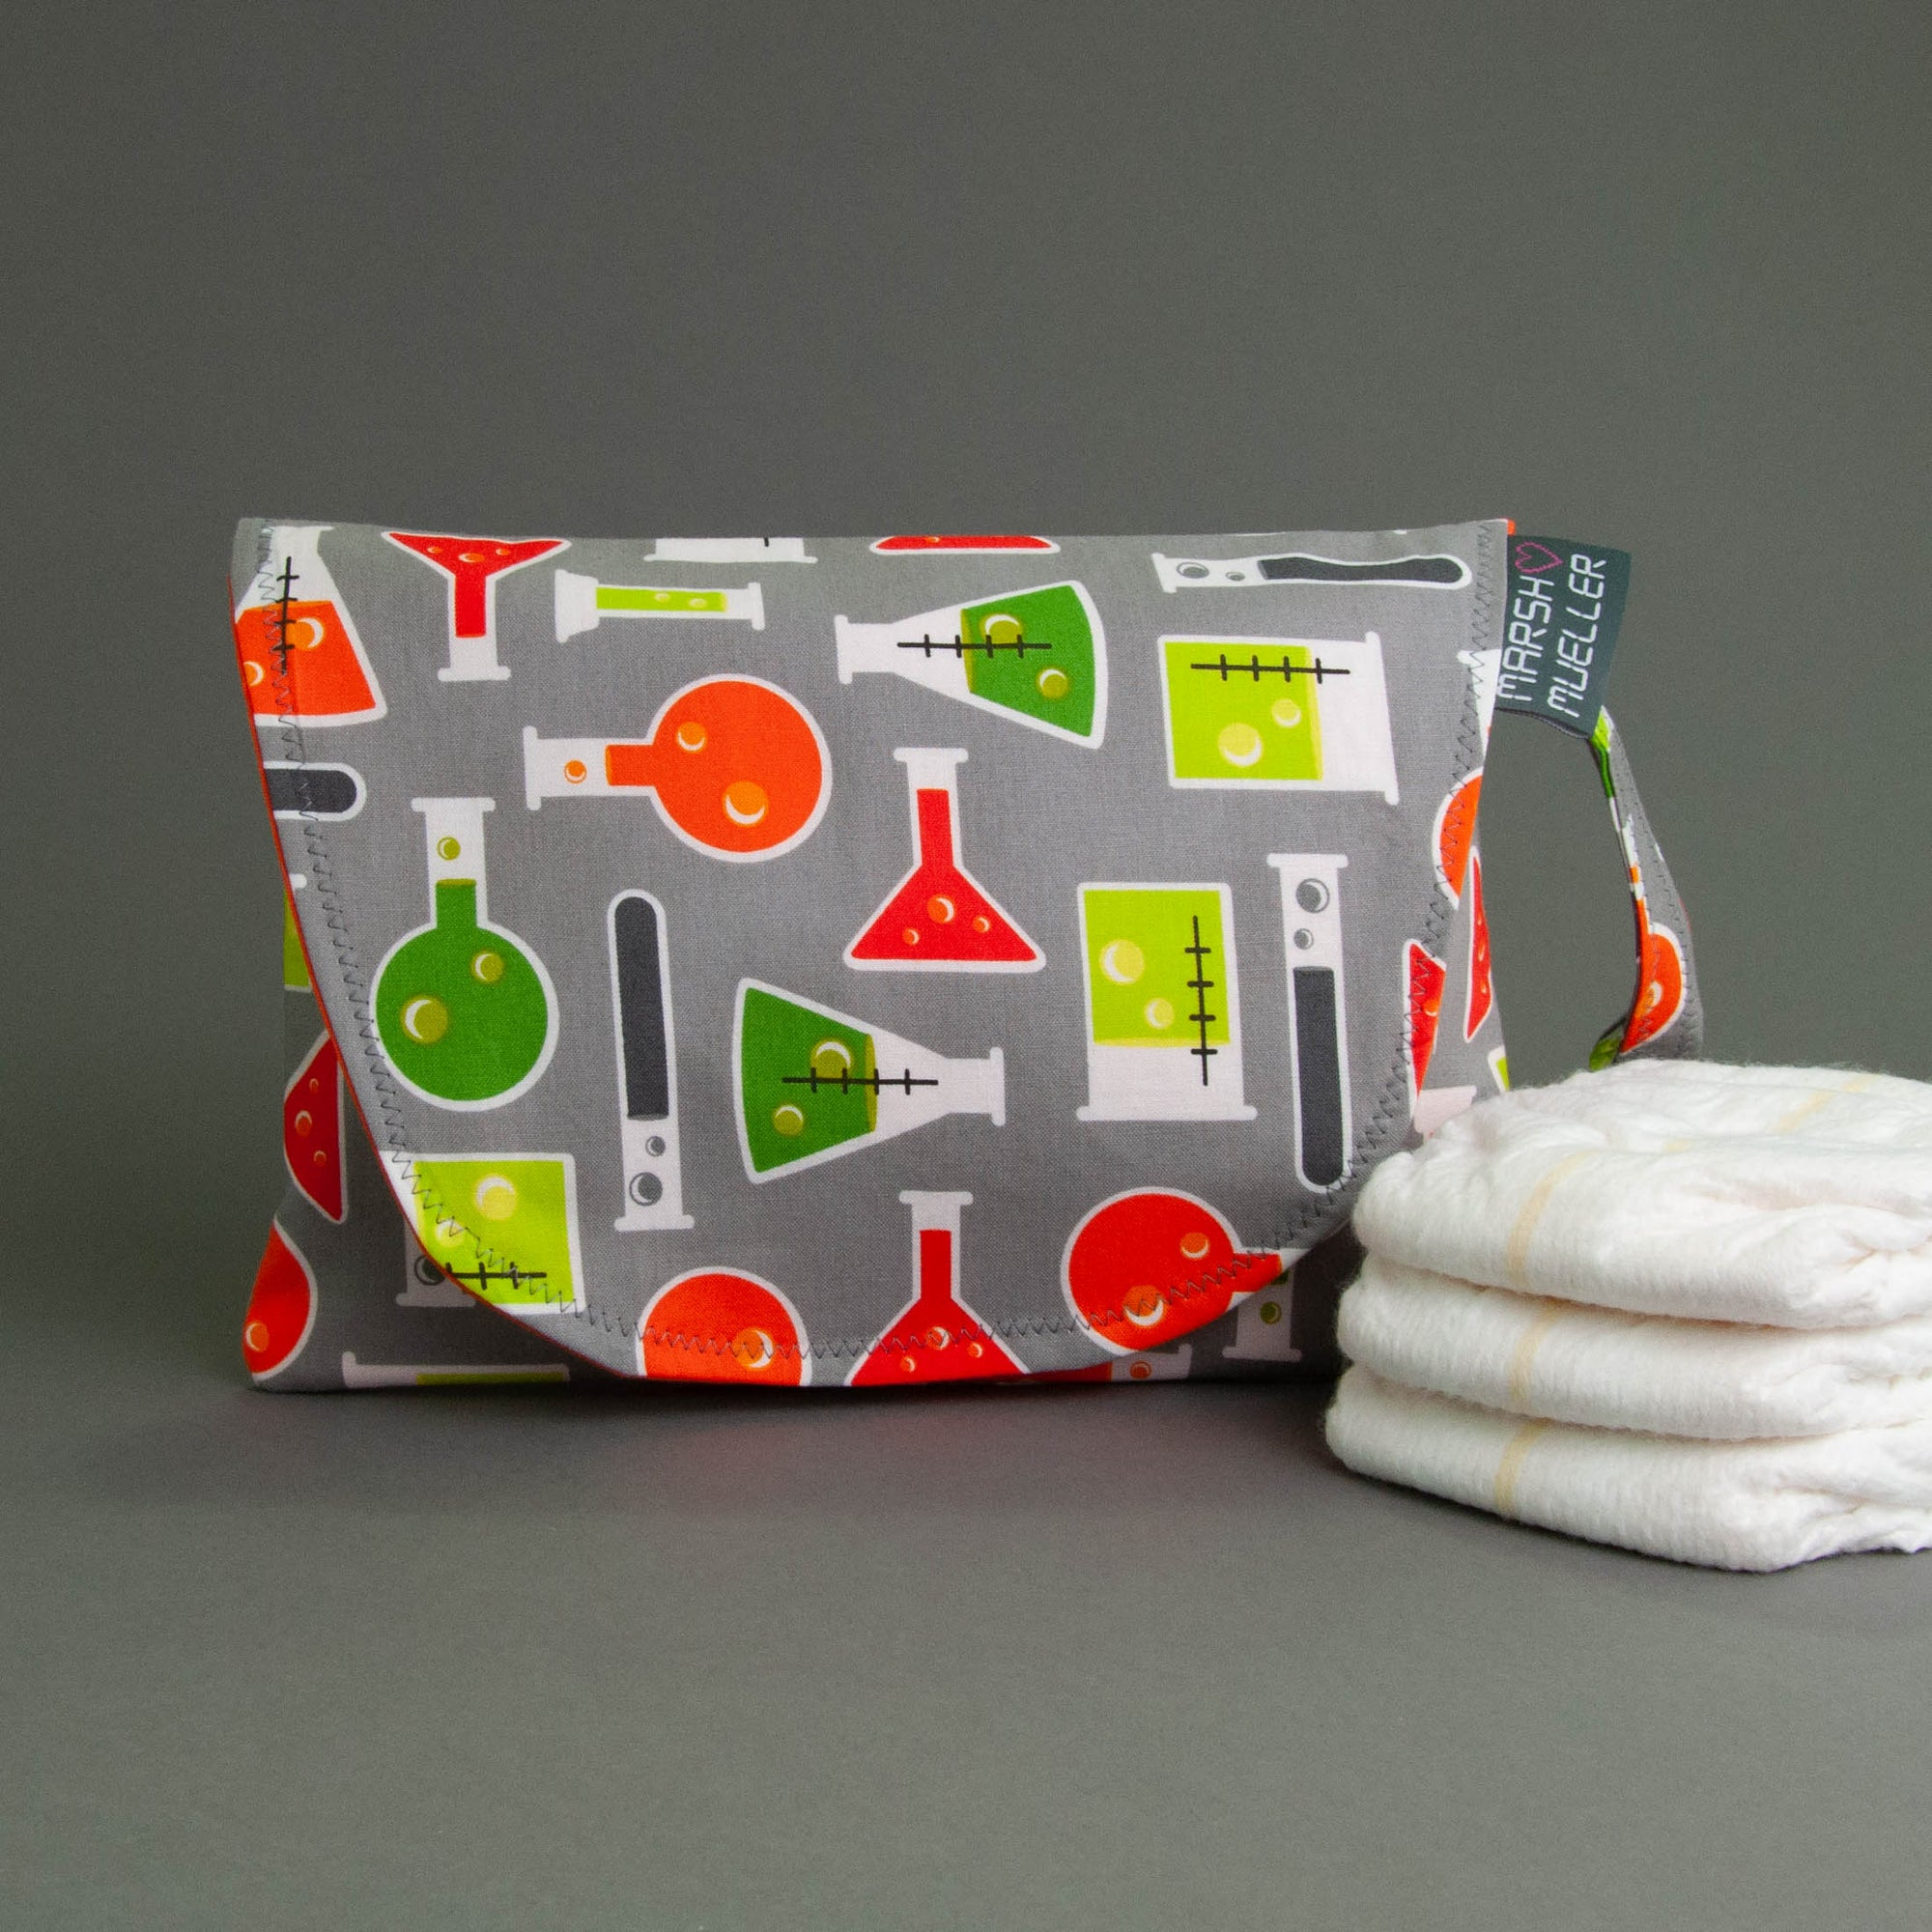 image of Marshmueller Diaper + Wipe Clutch in a bright beakers and flasks print fabric on a grey background with three diapers stacked to the right side